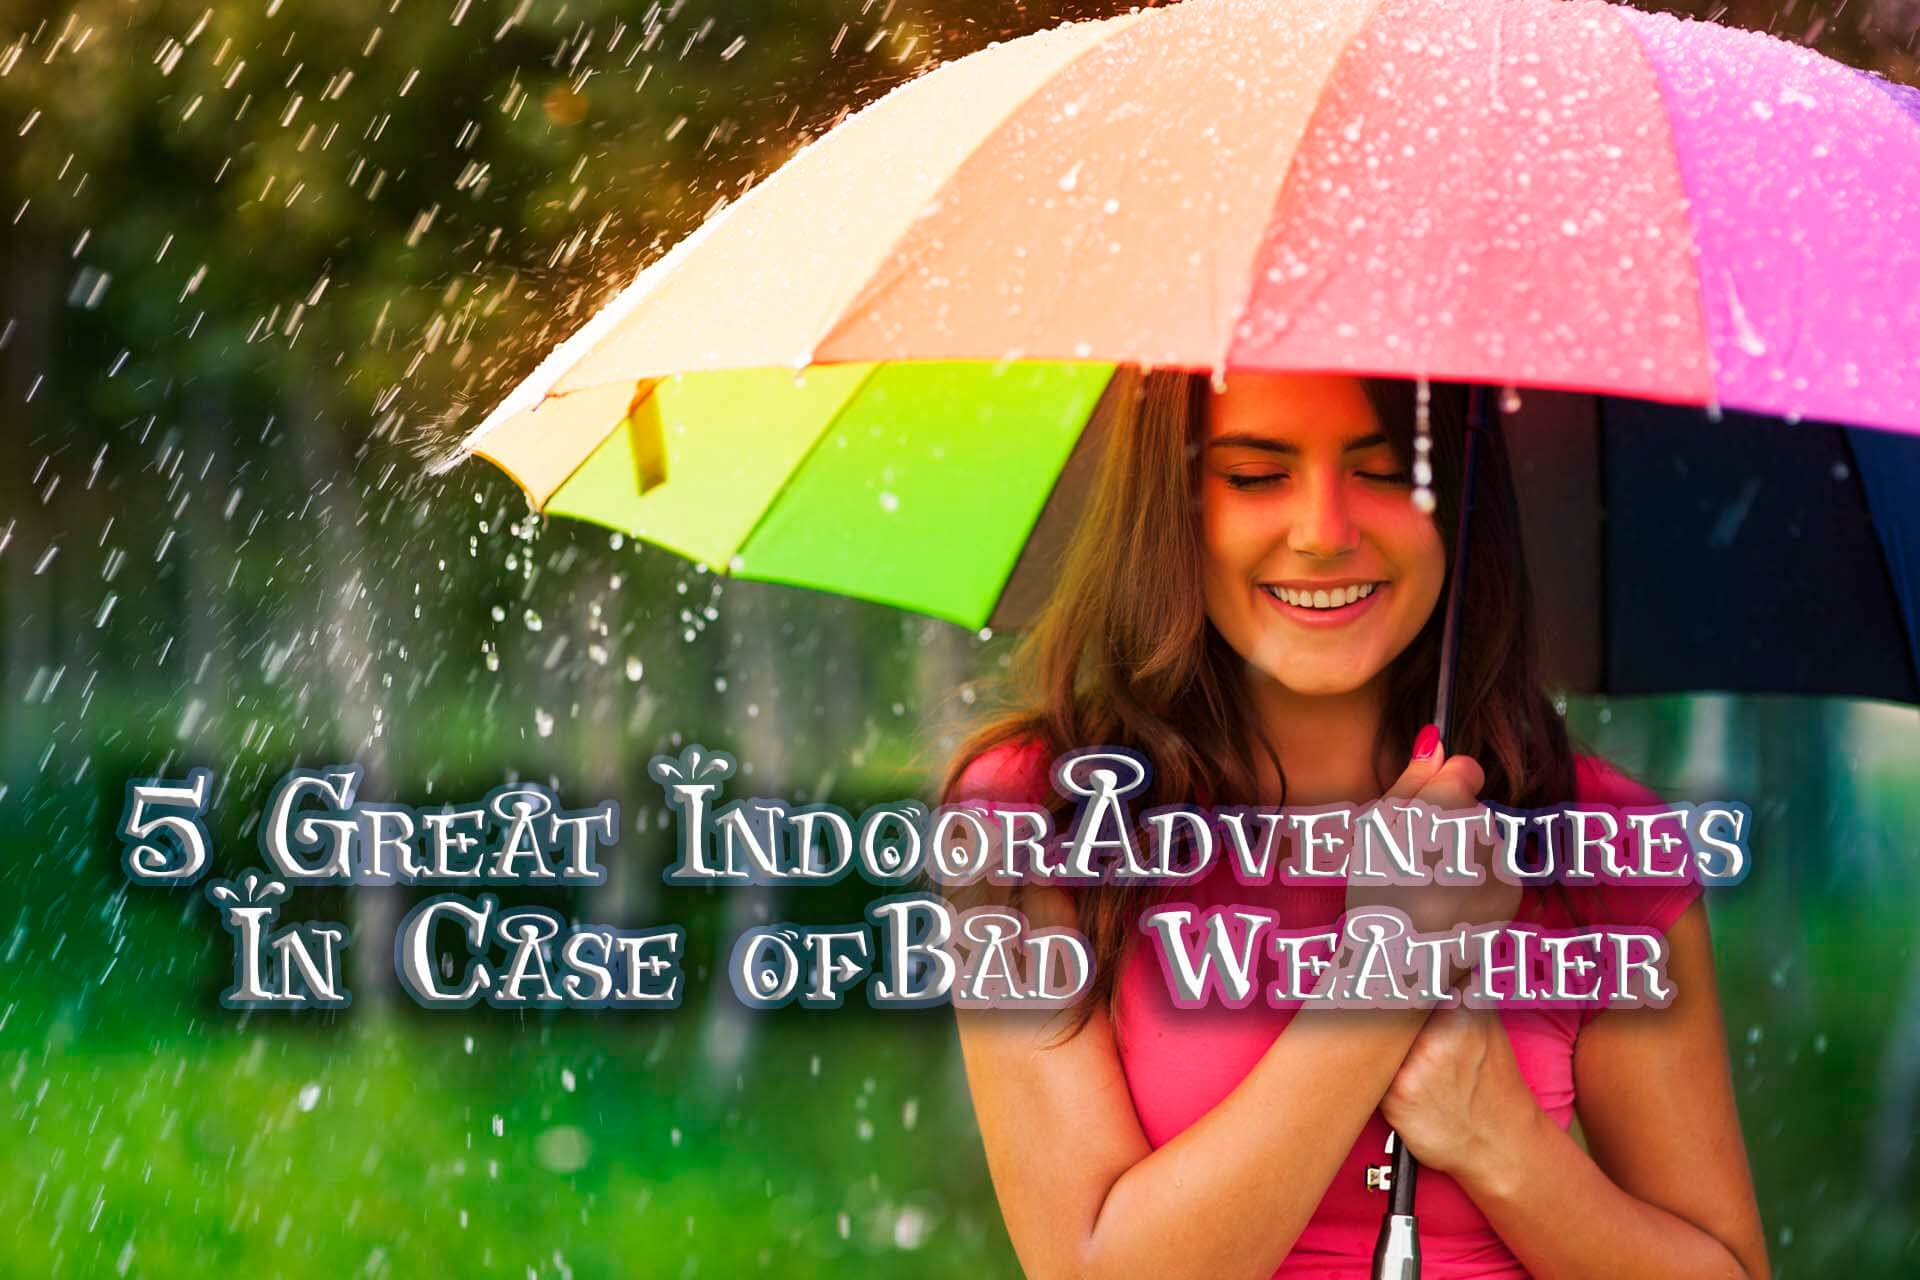 5-Great-Indoor-Adventures-In-Case-of-Bad-Weather.jpg